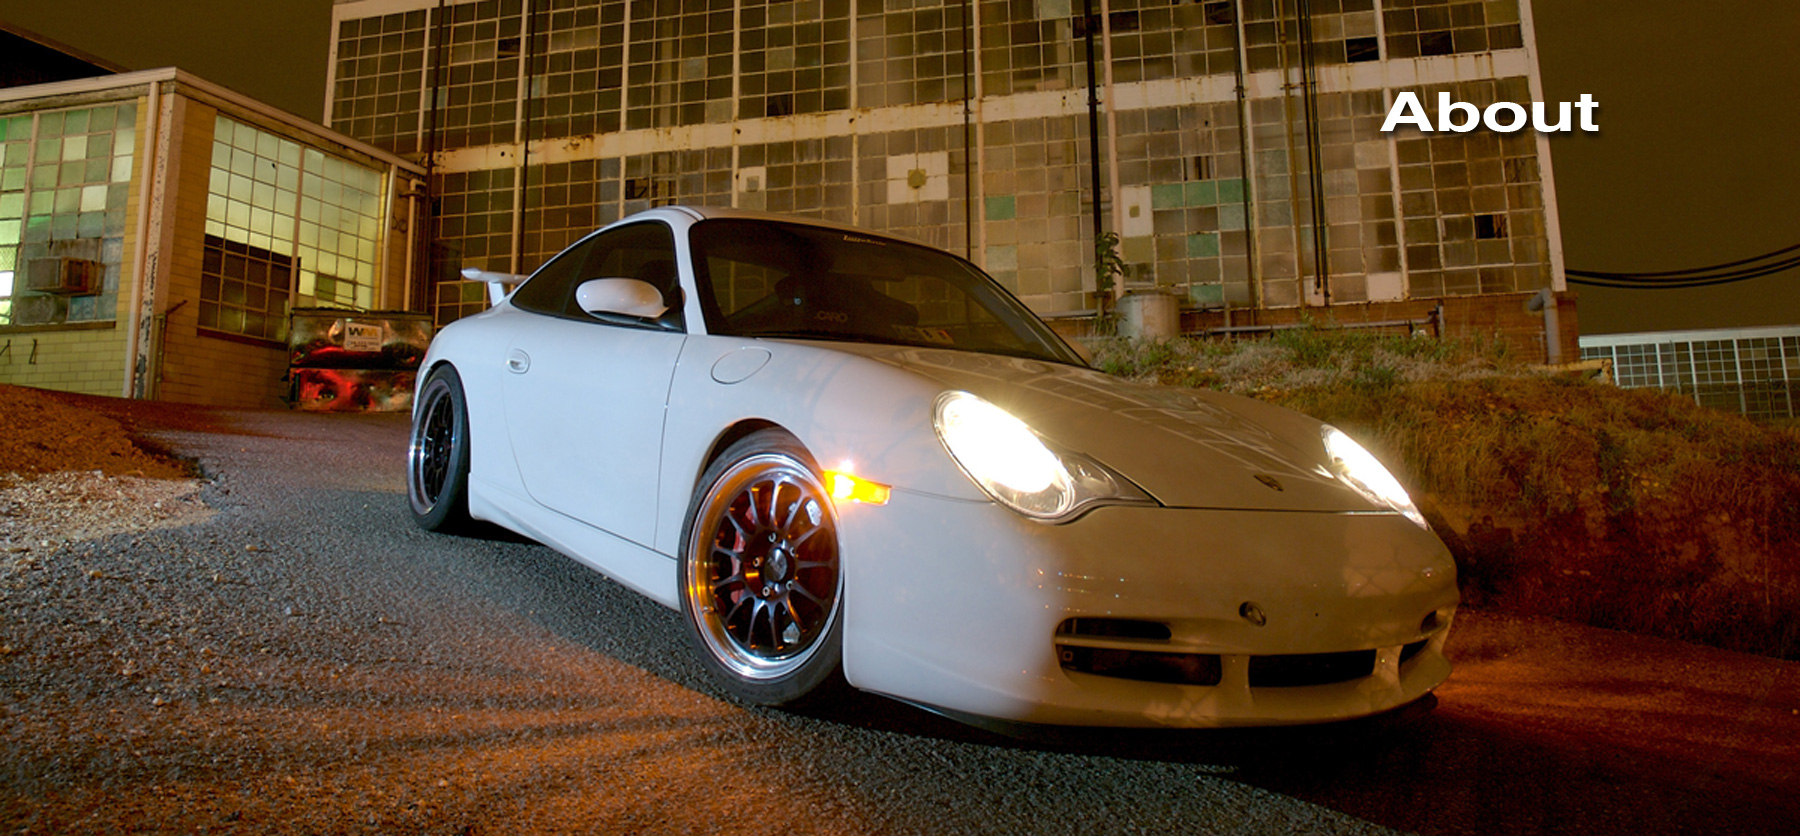 About Lüfteknic page header showing a white 996 gt3 in front of a building at night